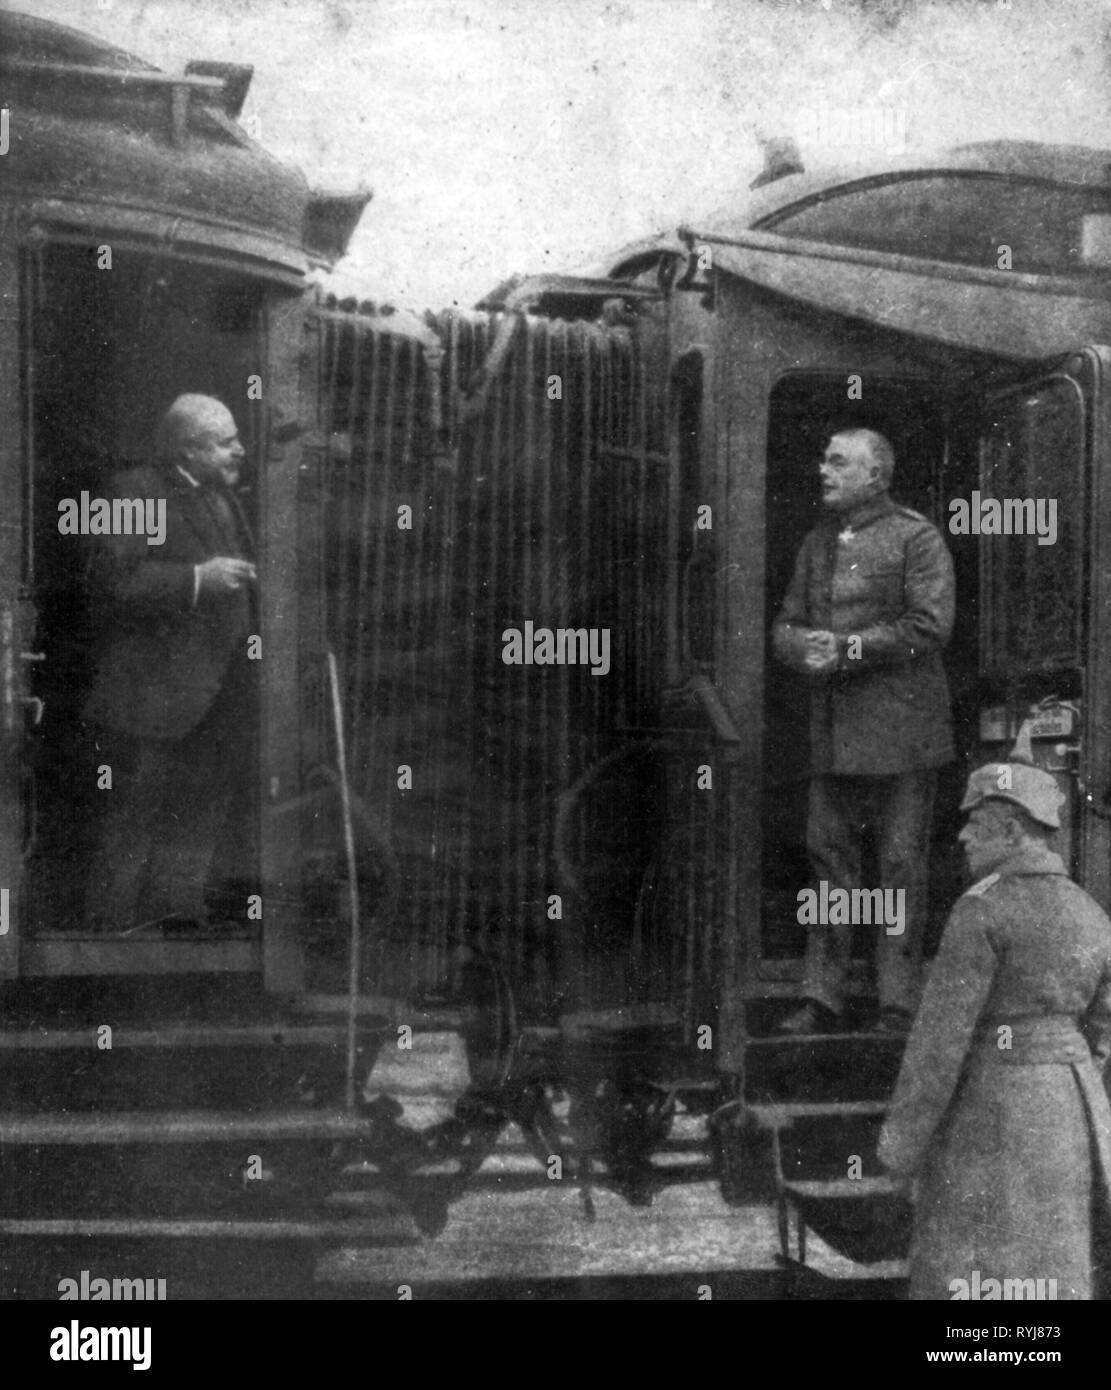 First World War / WWI, conferences, Brest-Litovsk, 22.12.1917 - 3.3.1918, Ibrahim Hakki Pasha, chief of the Ottoman delegation, is talking during of a stop of the train from Berlin with general Max Hoffmann, representative of the Supreme Army Command, 'Berliner Illustrierte Zeitung', 24.2.1918, Brest Litowvk, negotiations, ambassador, ambassadors, ambassadress, ambassadresses, eastern front, military, Germany, German Empire, Turkey, ally, Allies, Central Powers, railway, railroad, railways, railroads, voyage, voyages, arrival, transport, 1910s, 1, Additional-Rights-Clearance-Info-Not-Available - Stock Image